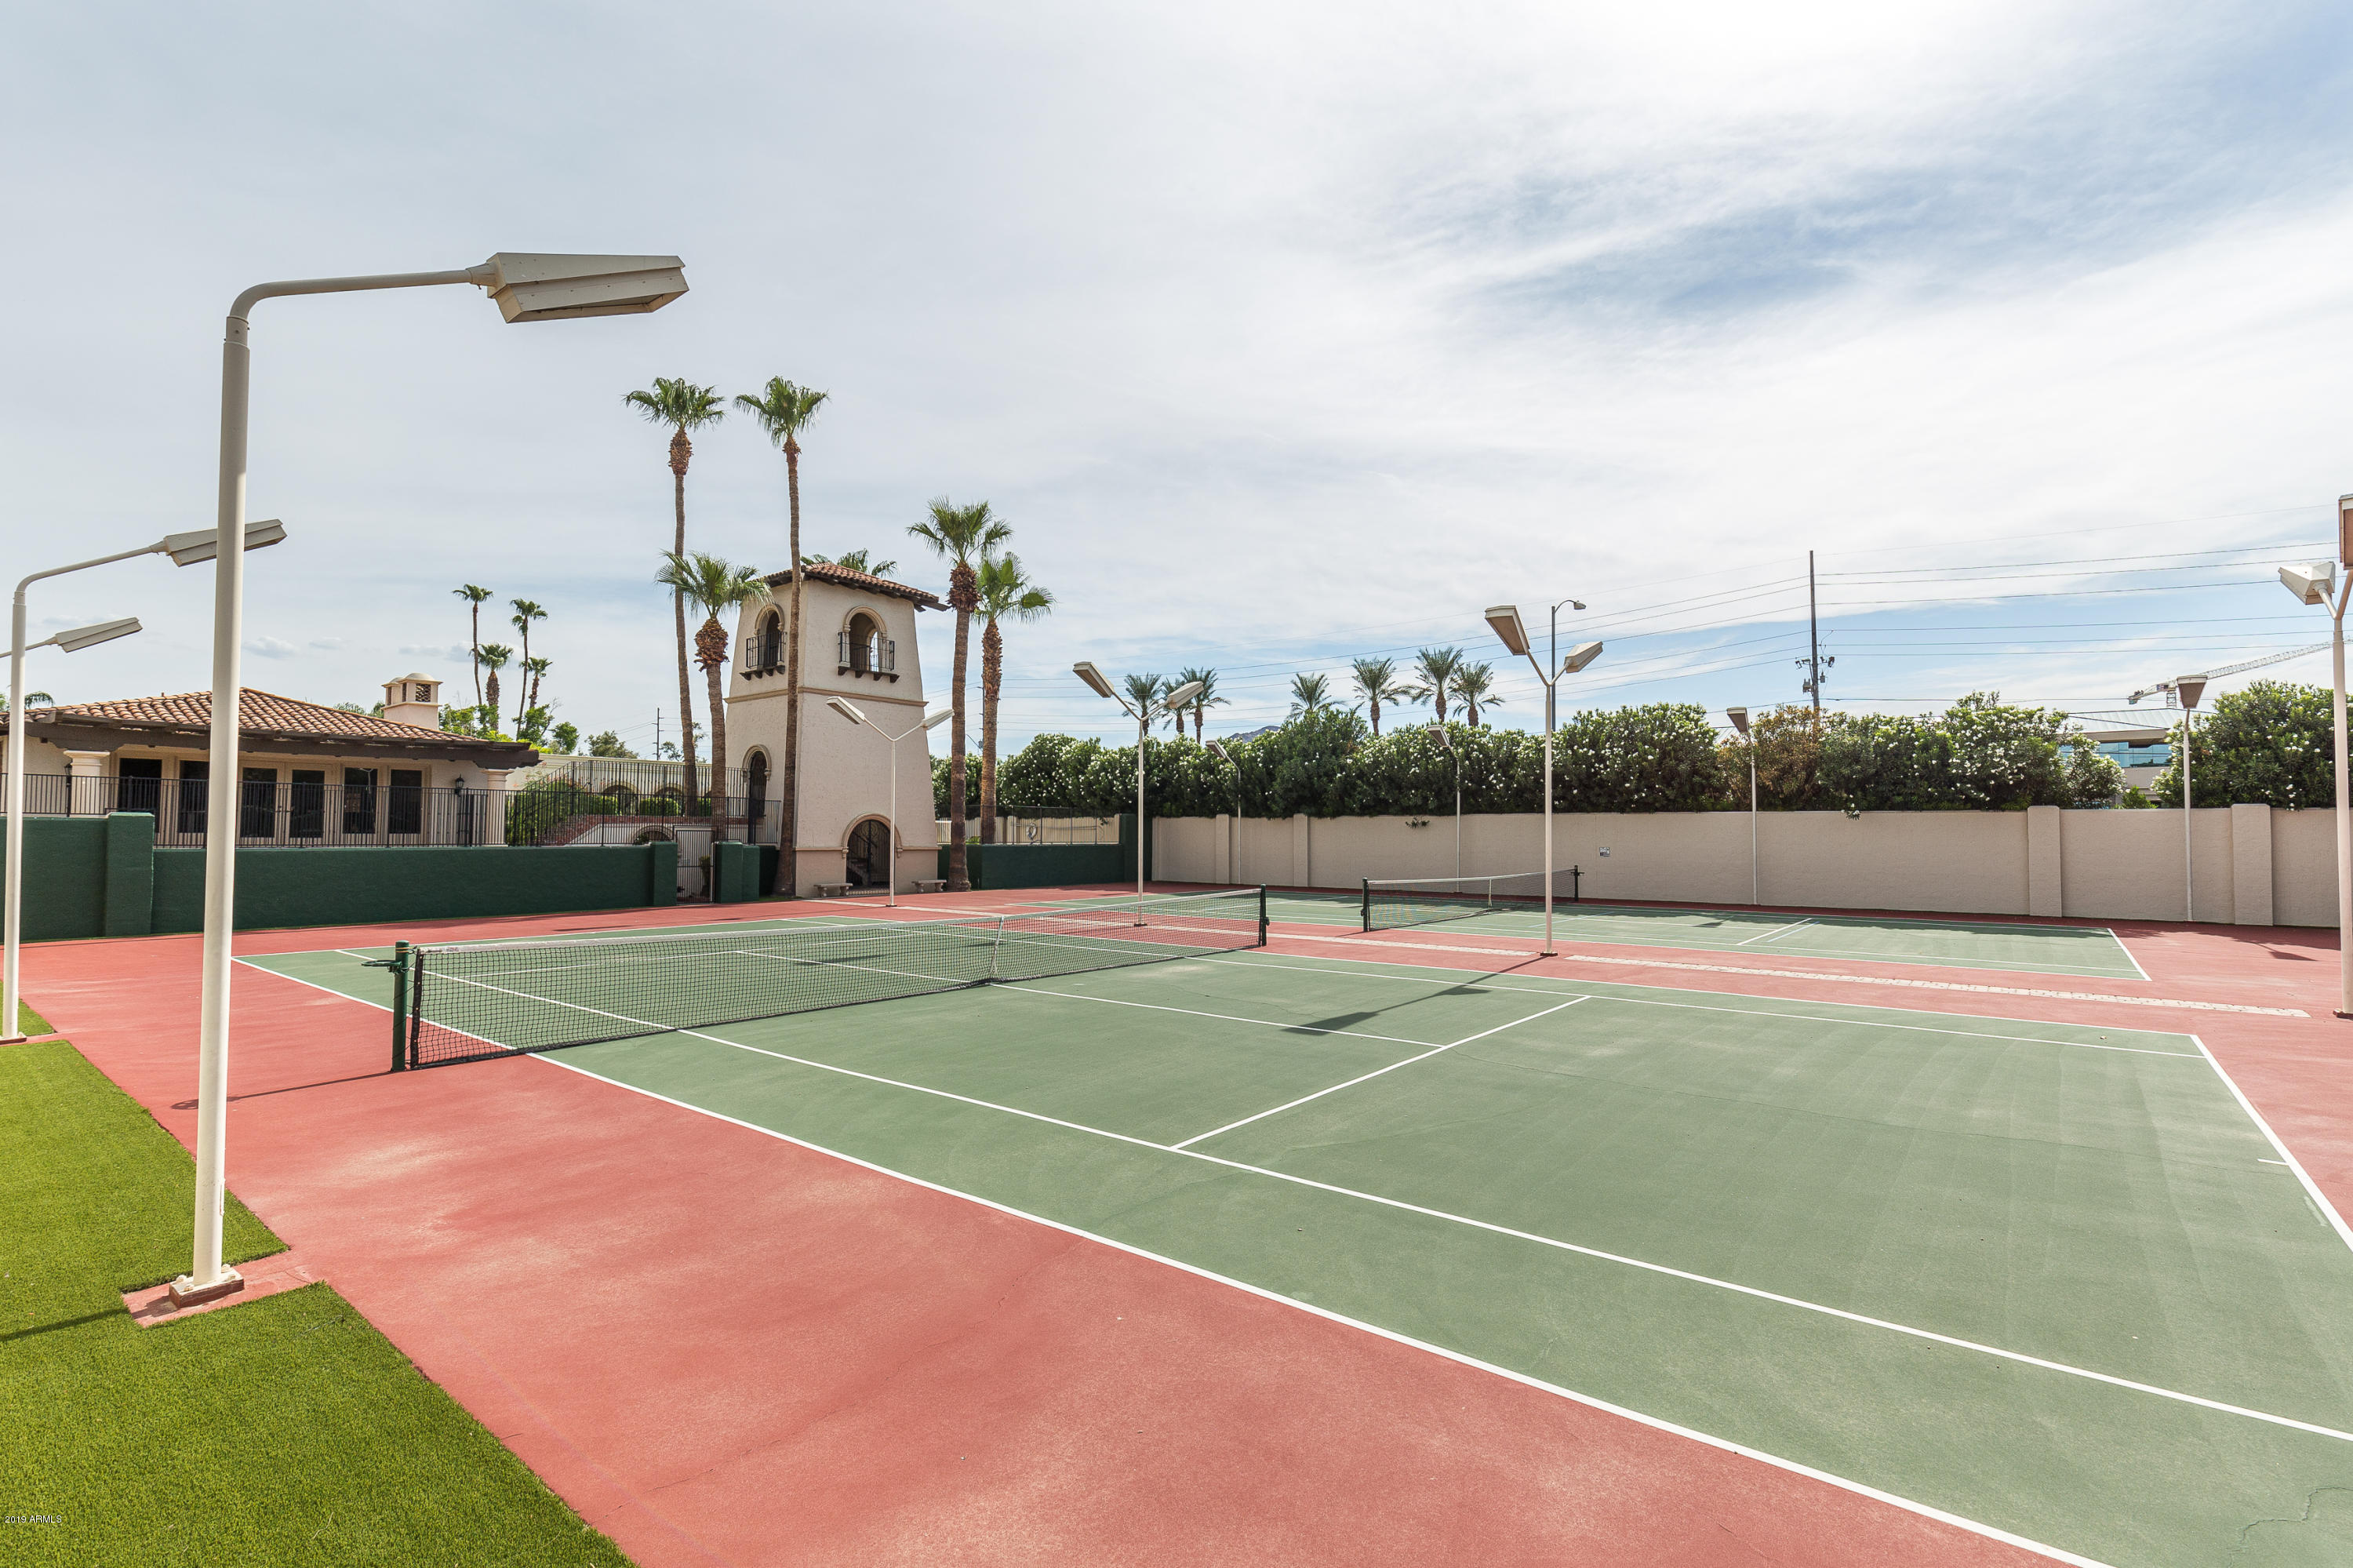 MLS 5961523 6701 N SCOTTSDALE Road Unit 26, Scottsdale, AZ 85250 Scottsdale AZ Private Pool